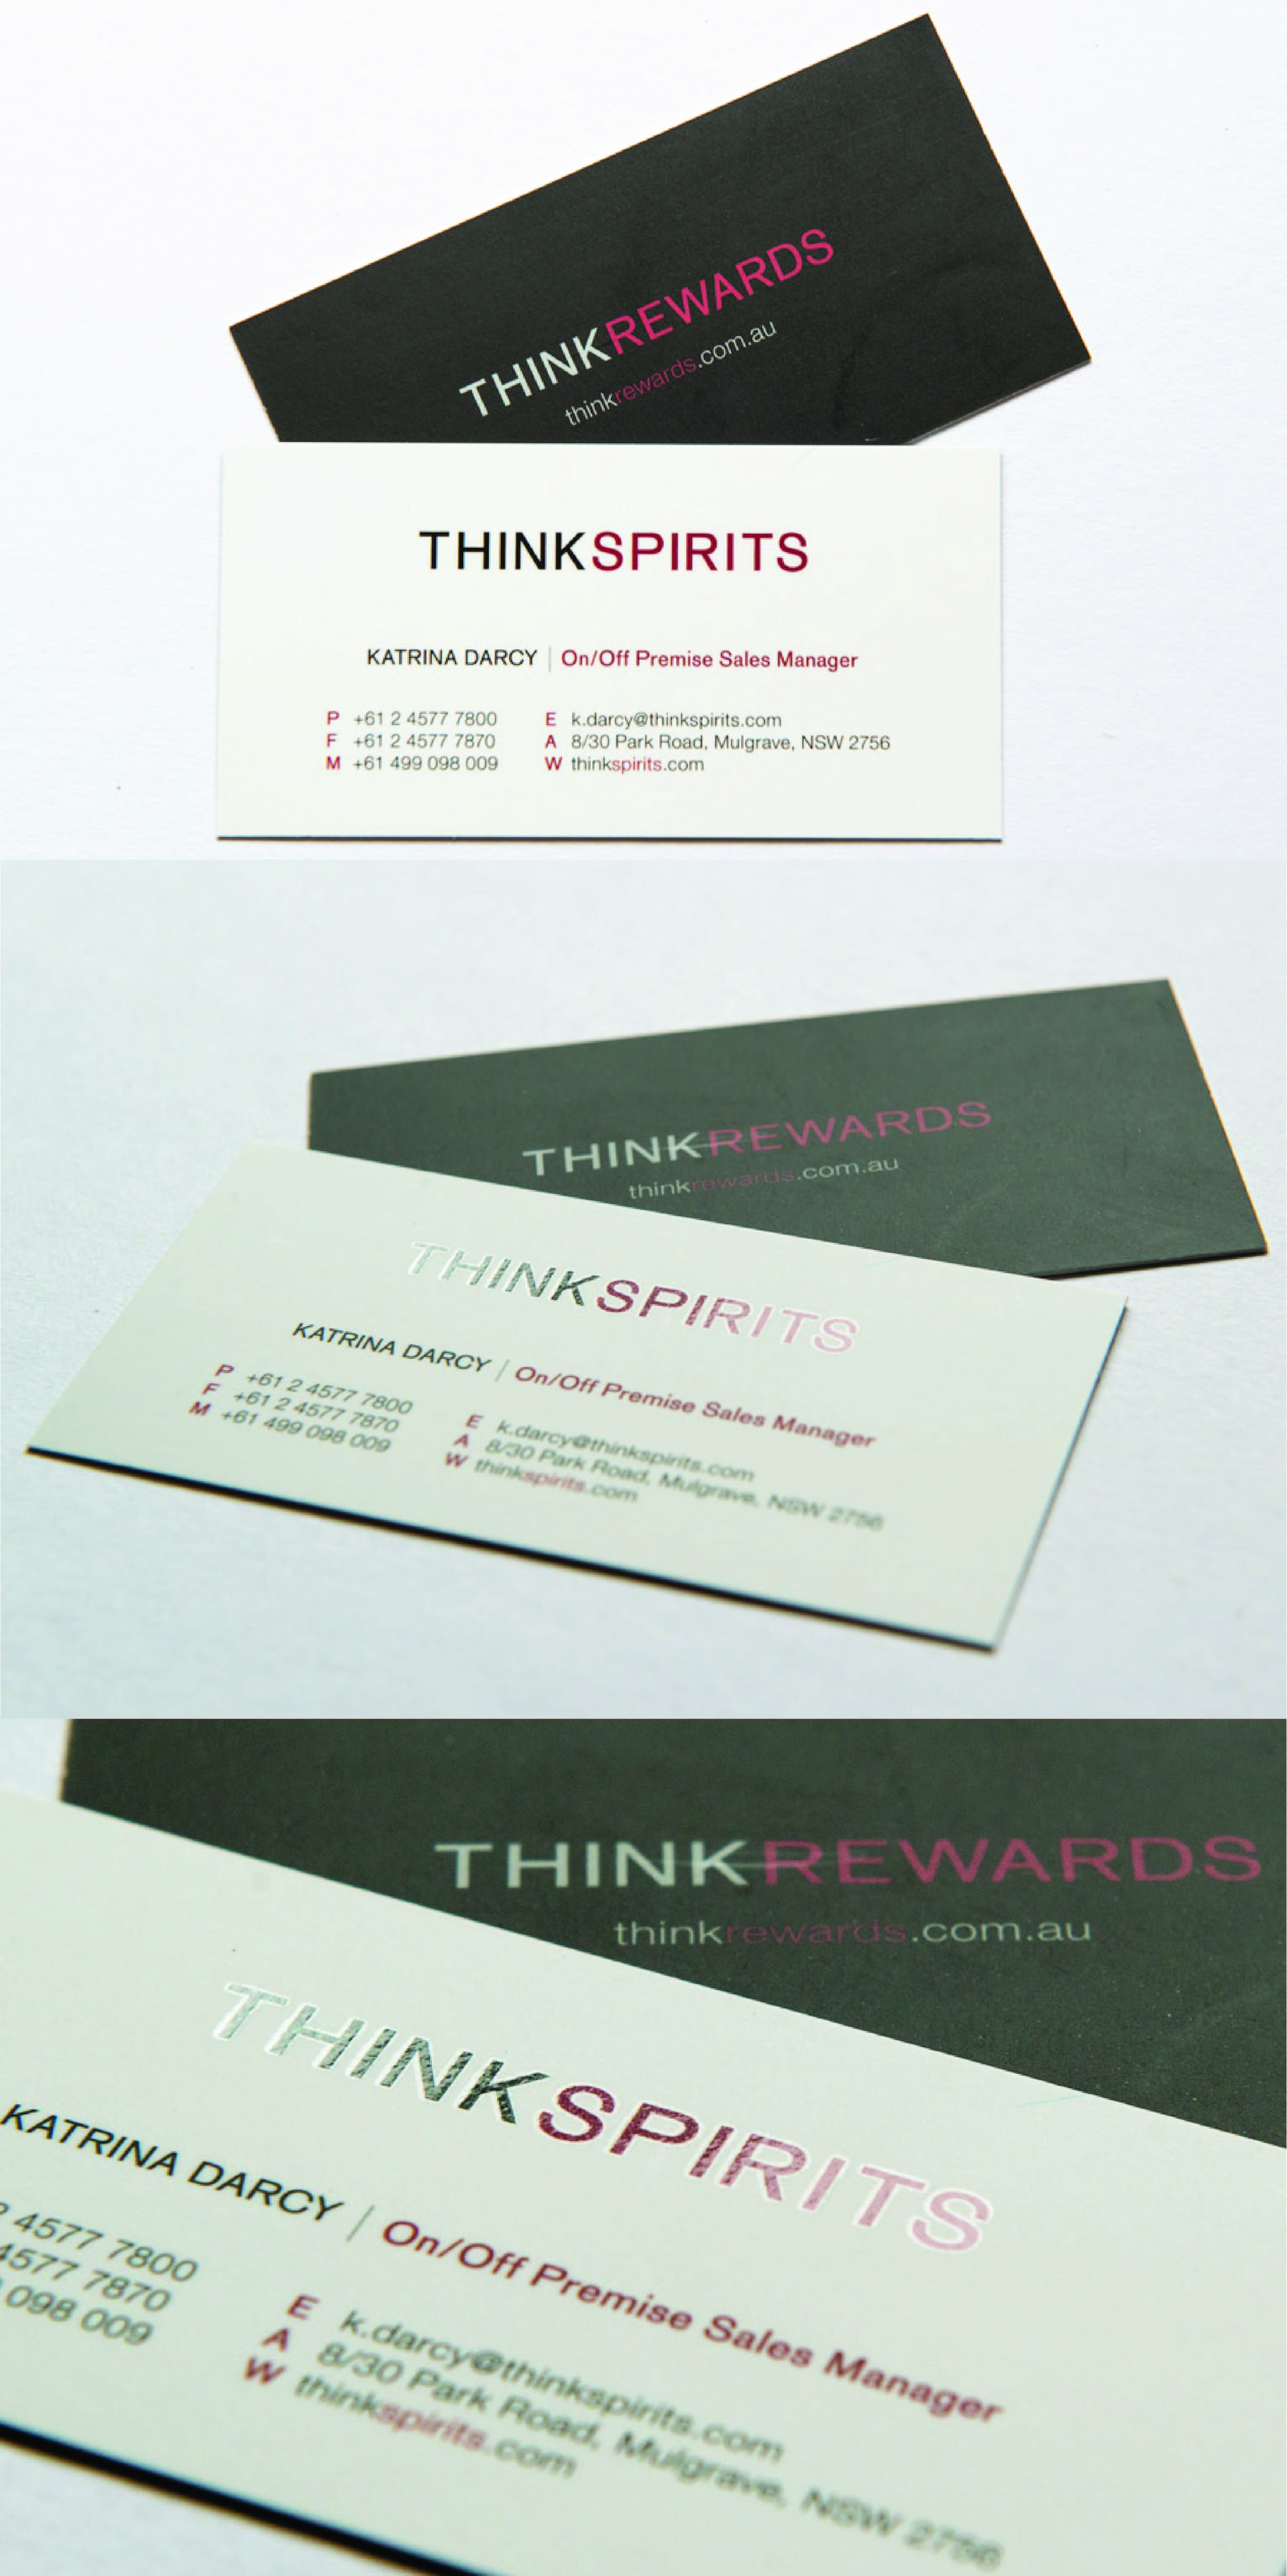 The Economy Business Cards Are The Standard Choice Out Of Our Range